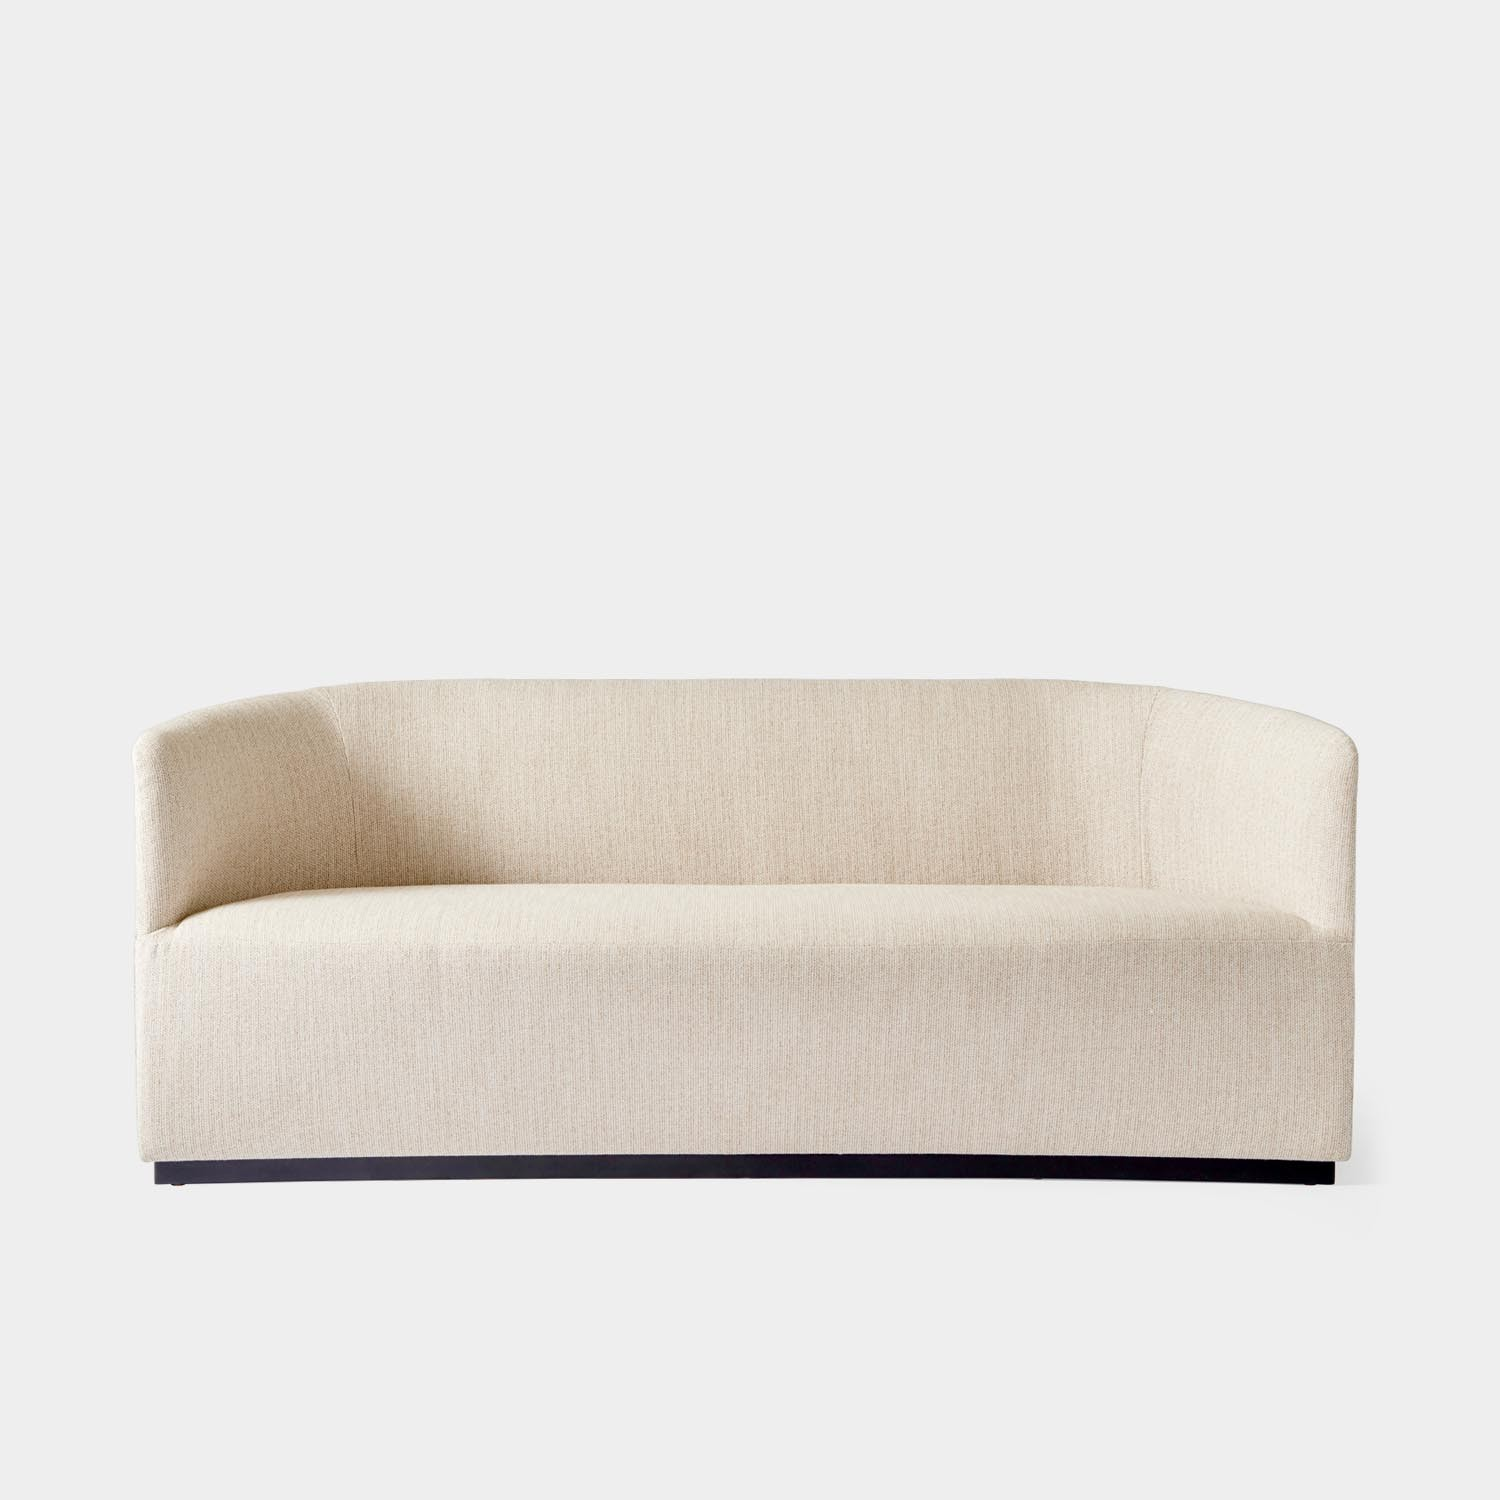 Tearoom Sofa, Cream